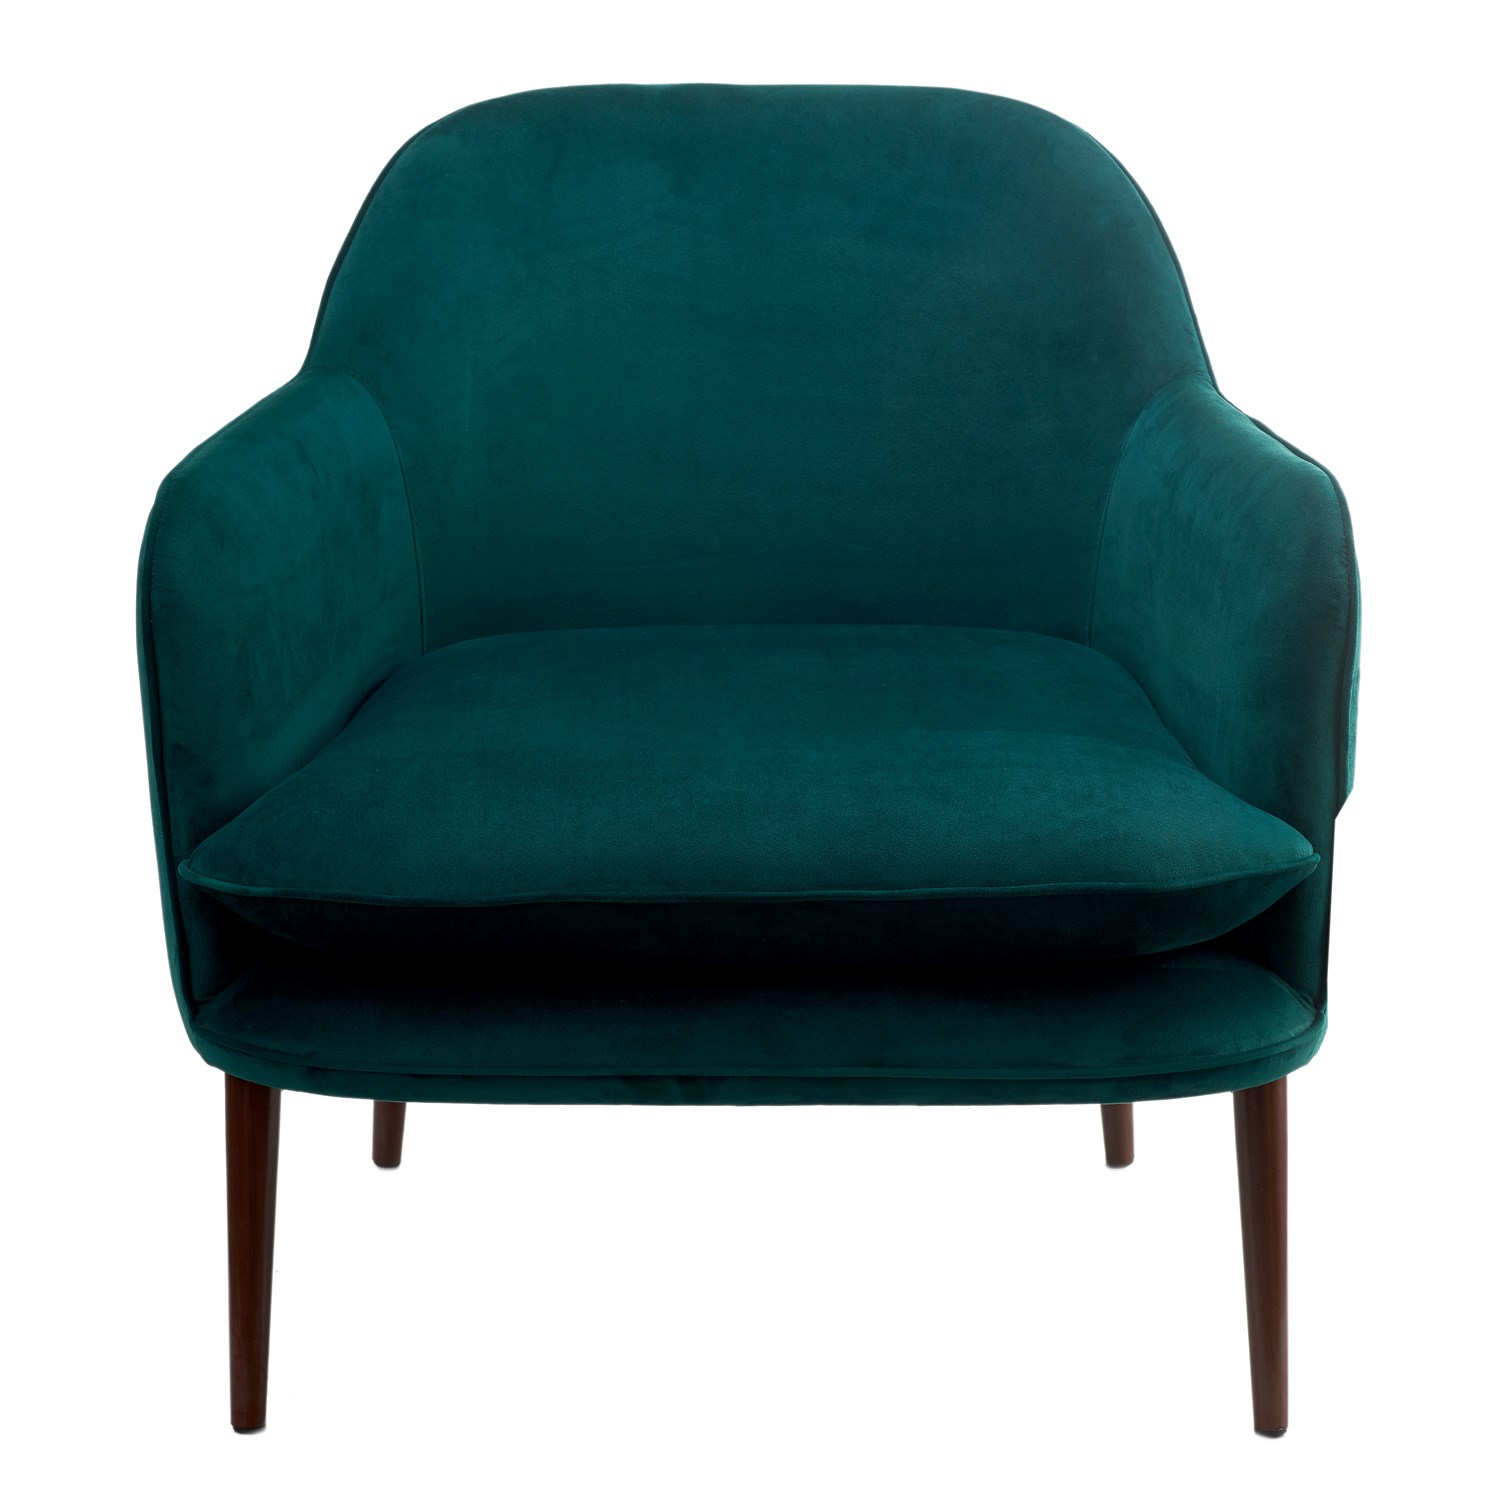 Кресло Pols Potten Fauteuil Charmy green